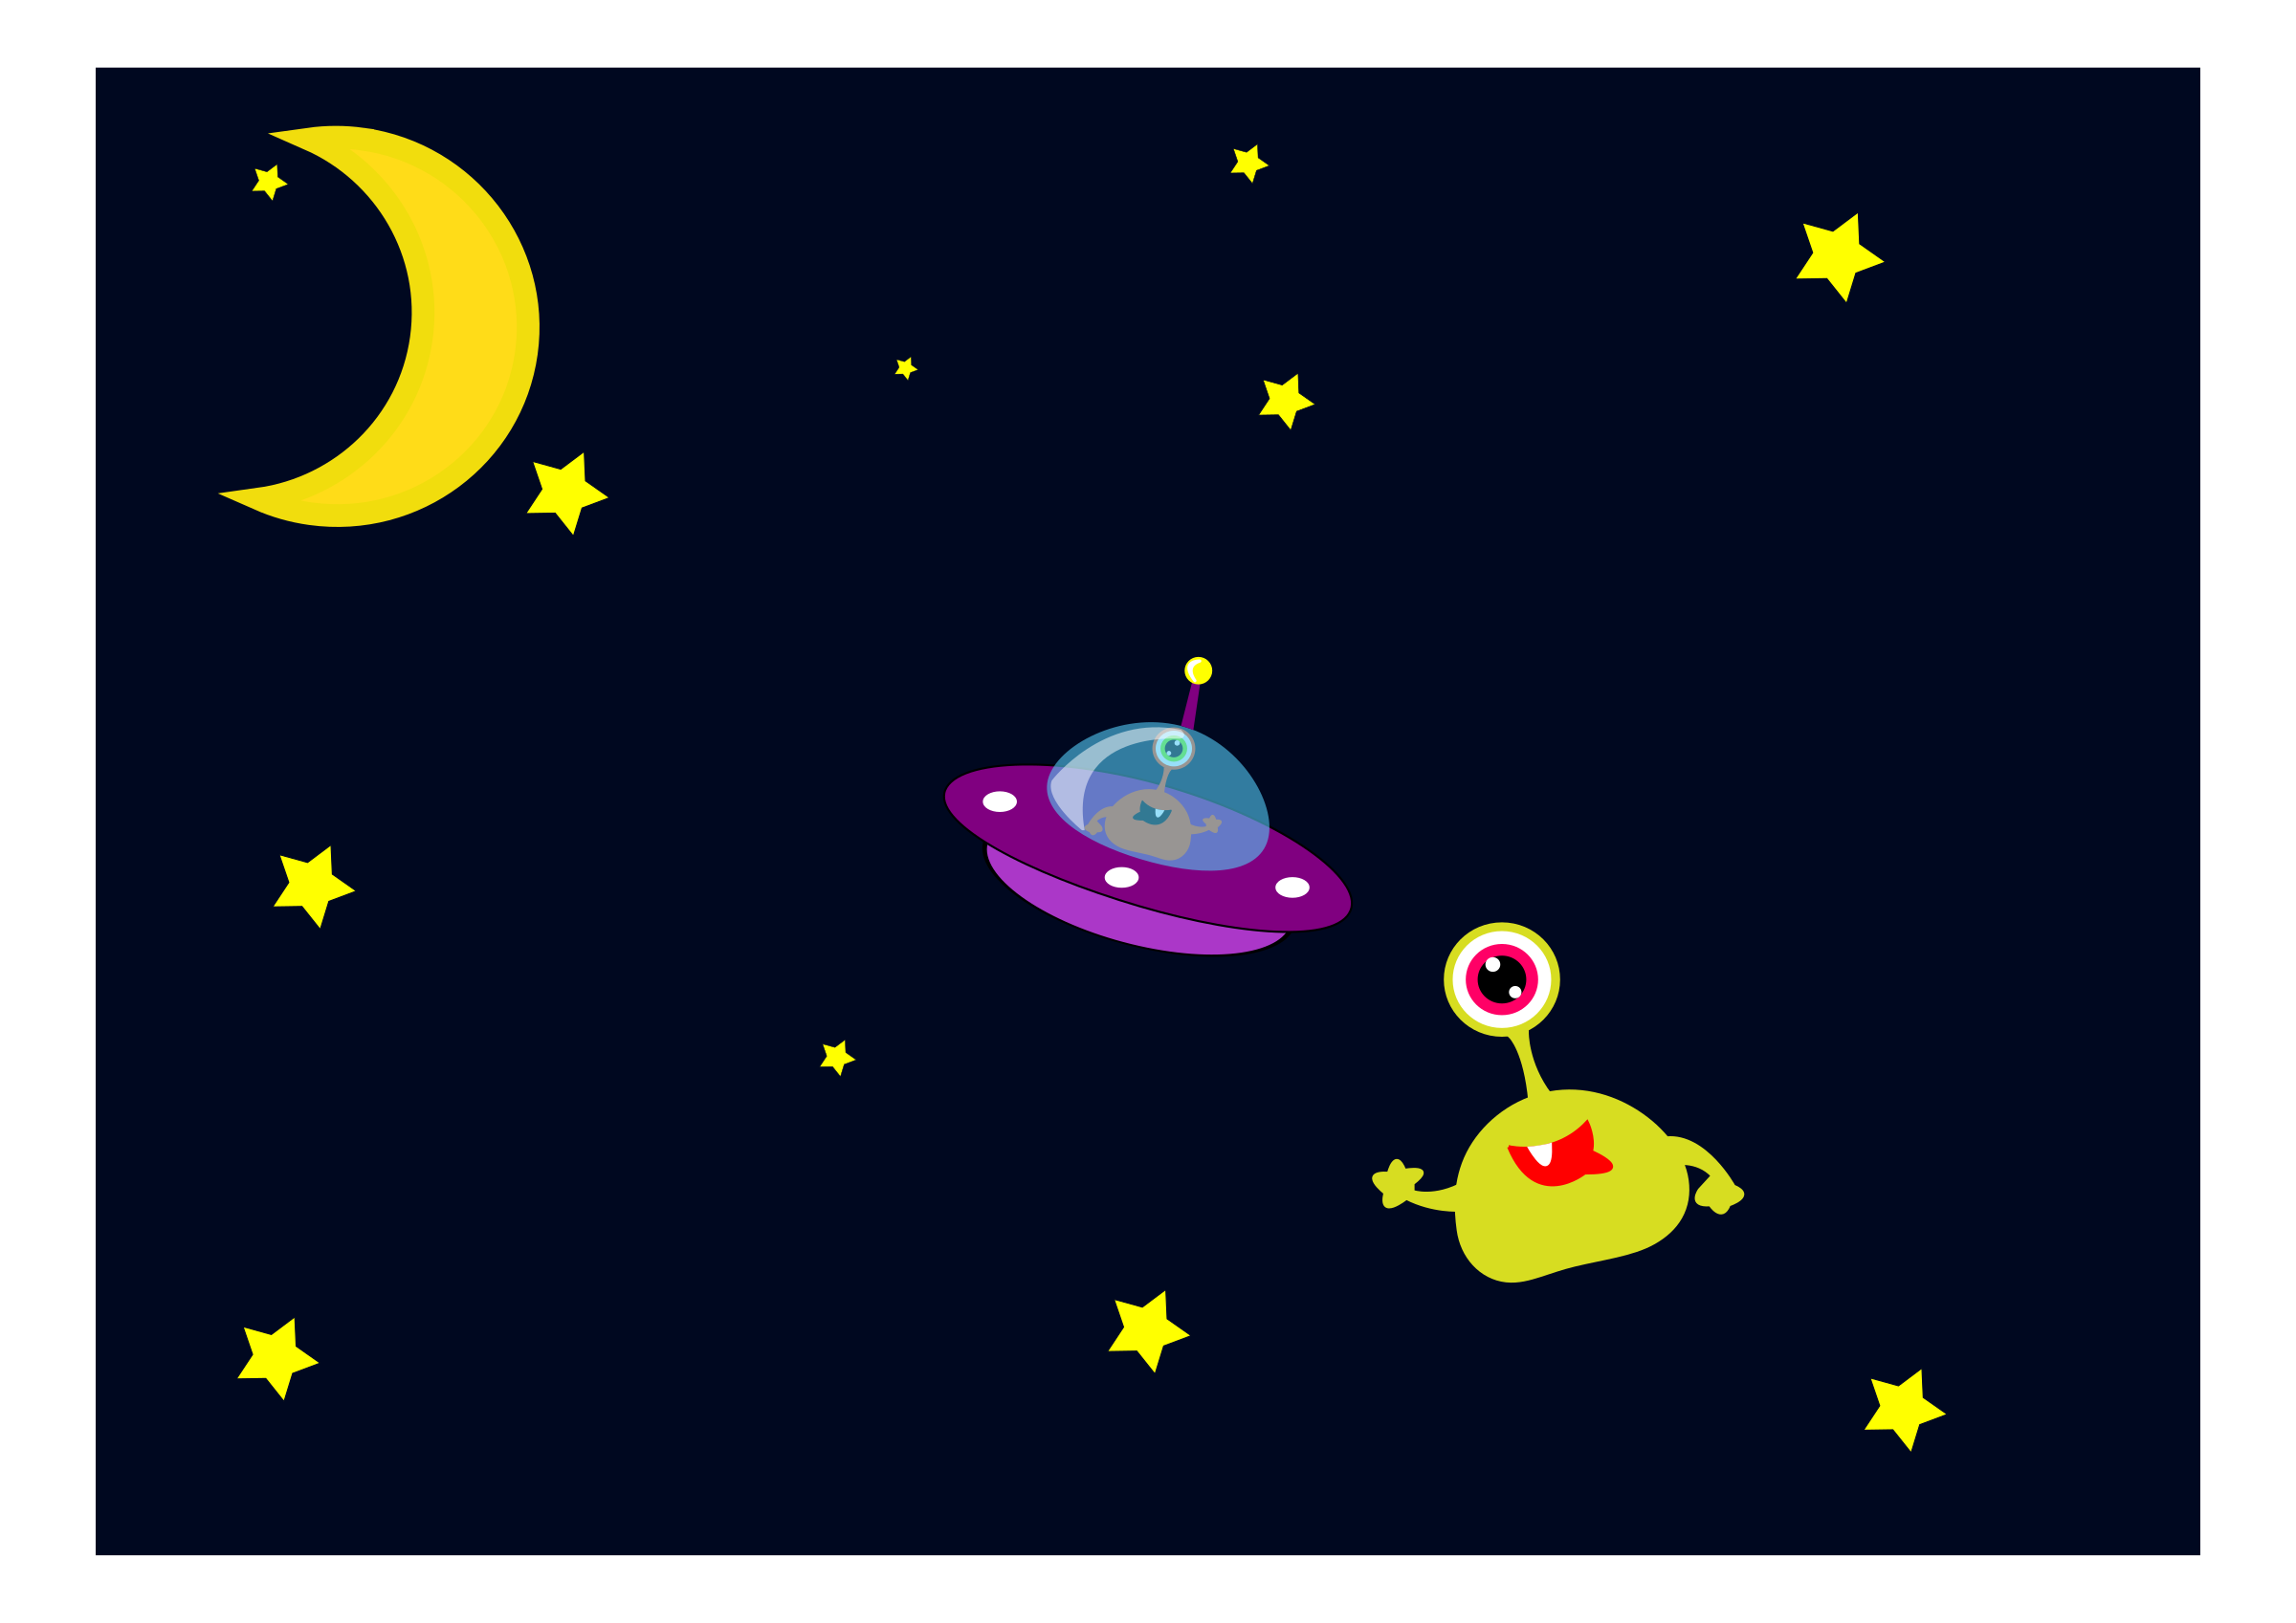 Galaxy clipart space scene. Extraterrestrial icons png free